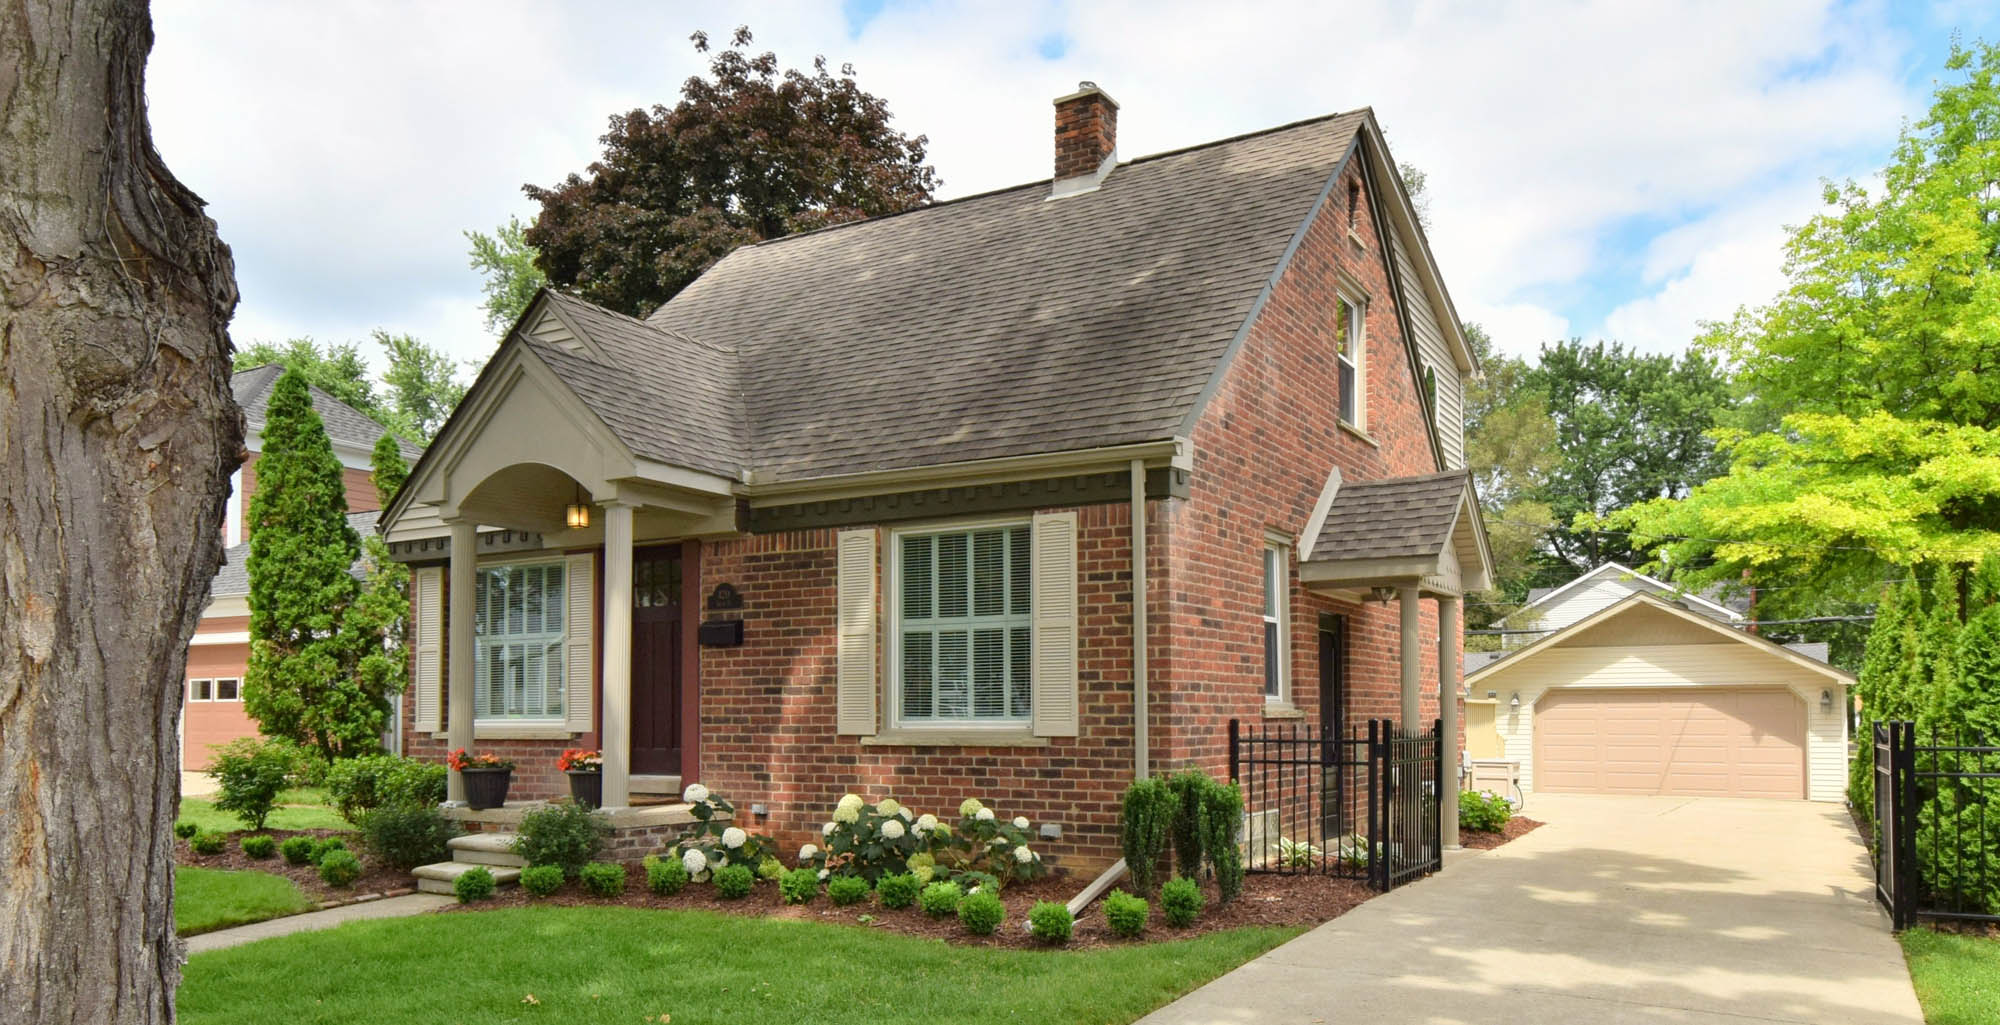 small house color scheme ideas - brick house with tan columns and trim detached garage